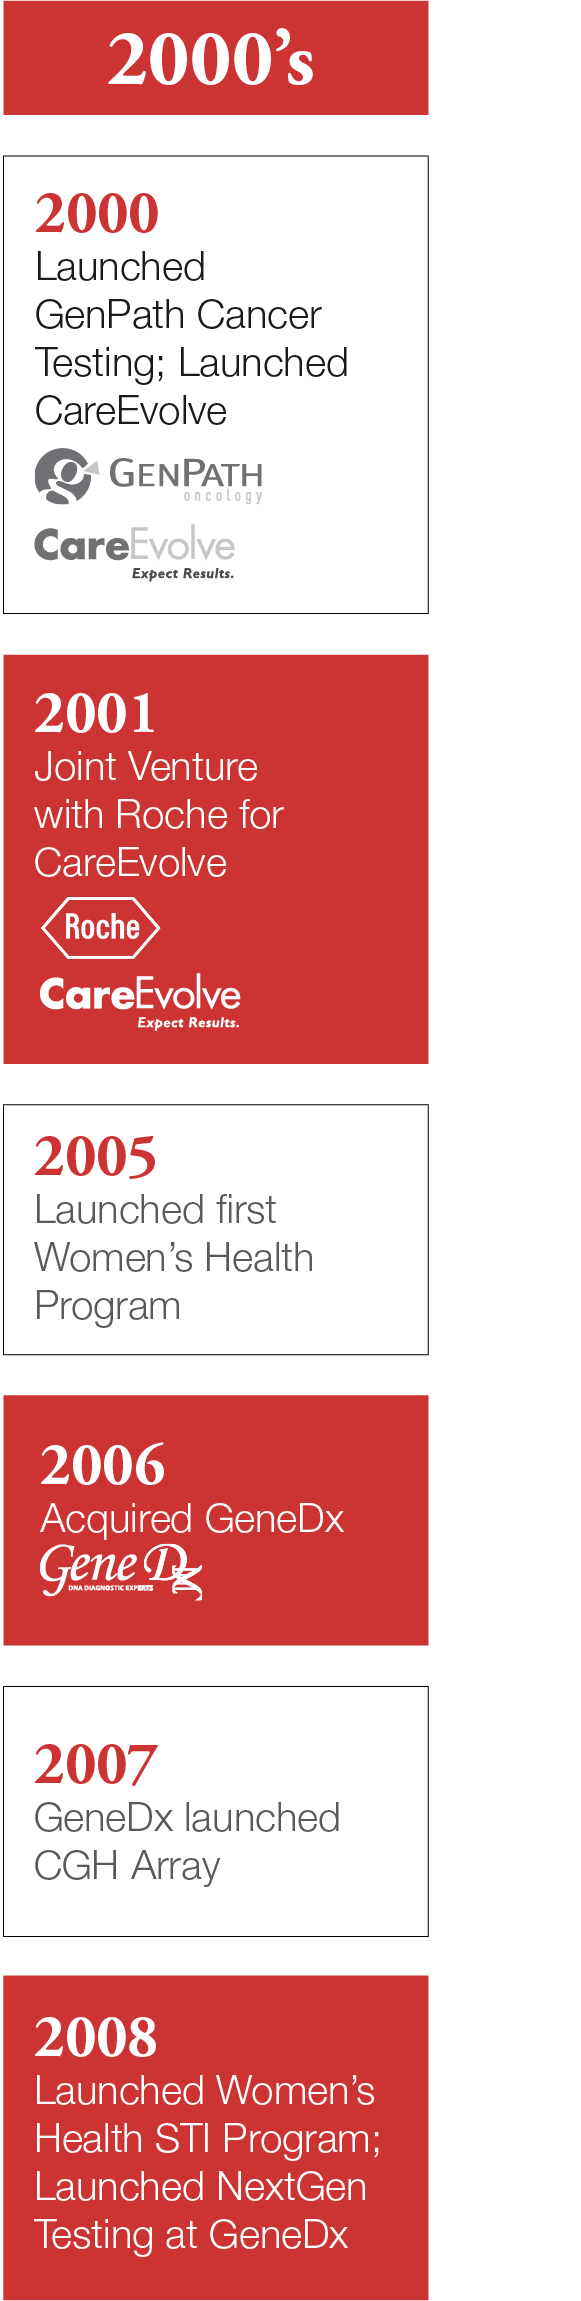 Timeline 2000's: 2000 - launched genpath cancer testing, launched careevolve; 2001 - joint venture with roche for careevolve; 2005 - launched first women's health program; 2006 - aquired genedx; 2007 - genedx launched CGH Array; 2008 - Launched women's health STI program, launched nextgen testing at genedx